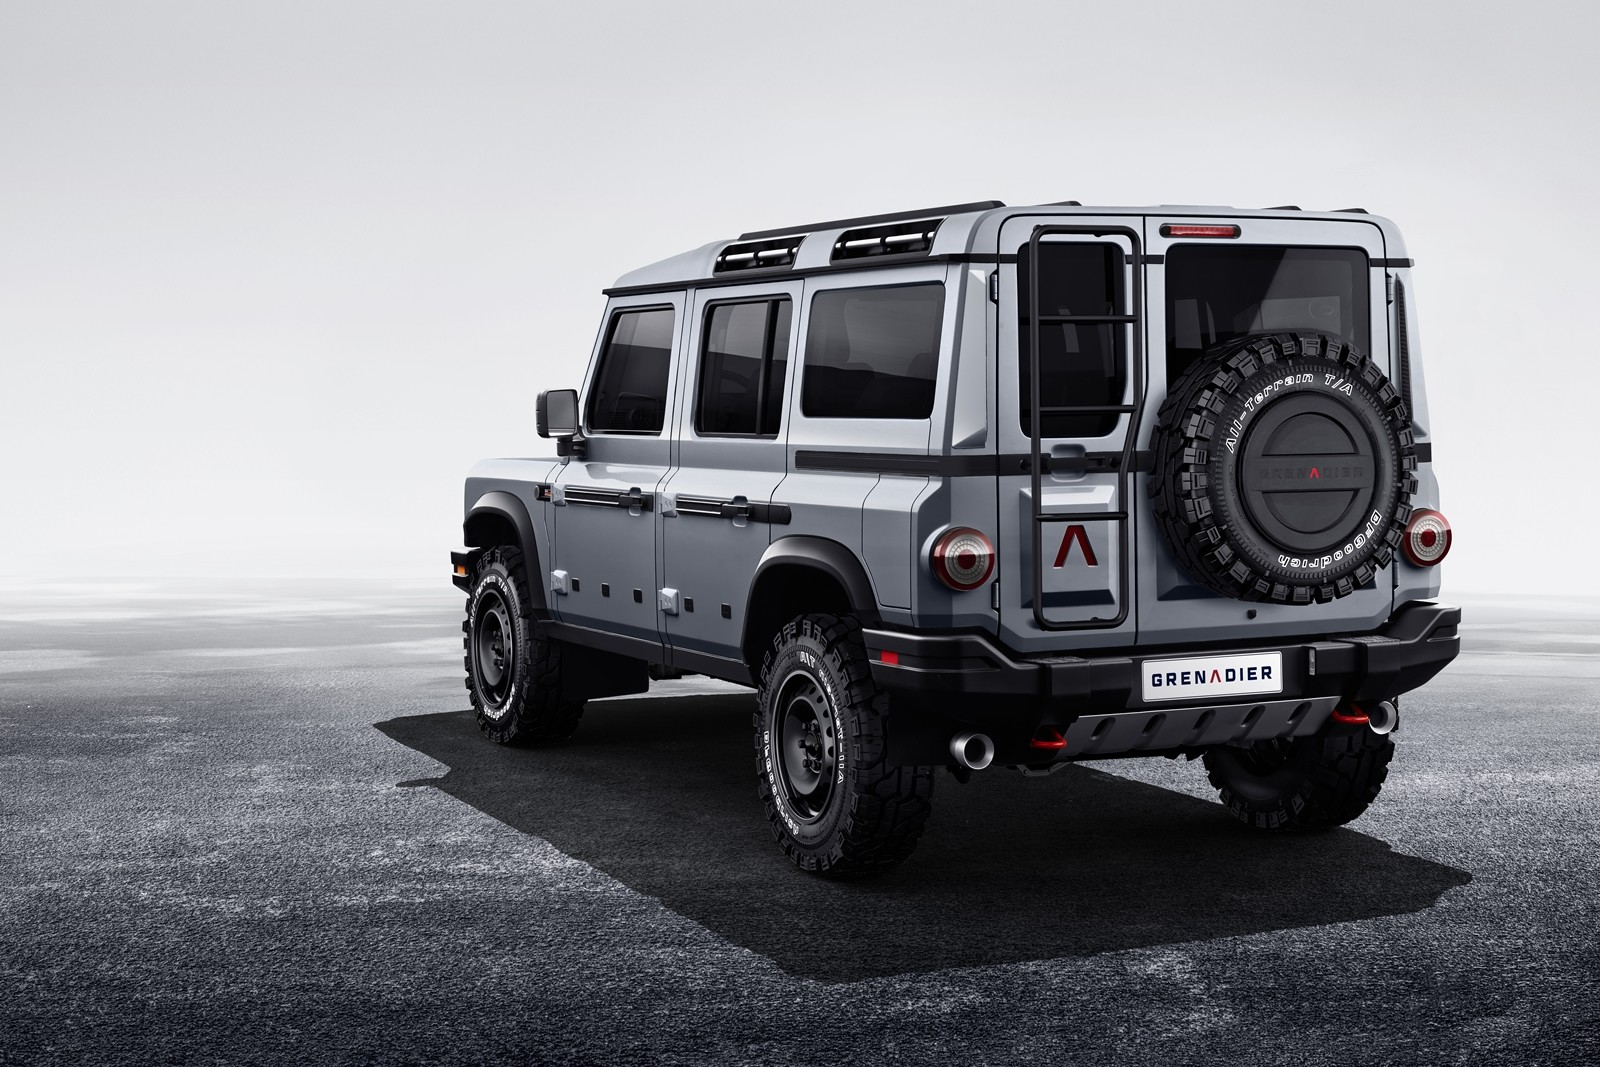 Grenadier  Ineos quer ser o SUV definitivo que preencherá a lacuna do Land Rover Defender